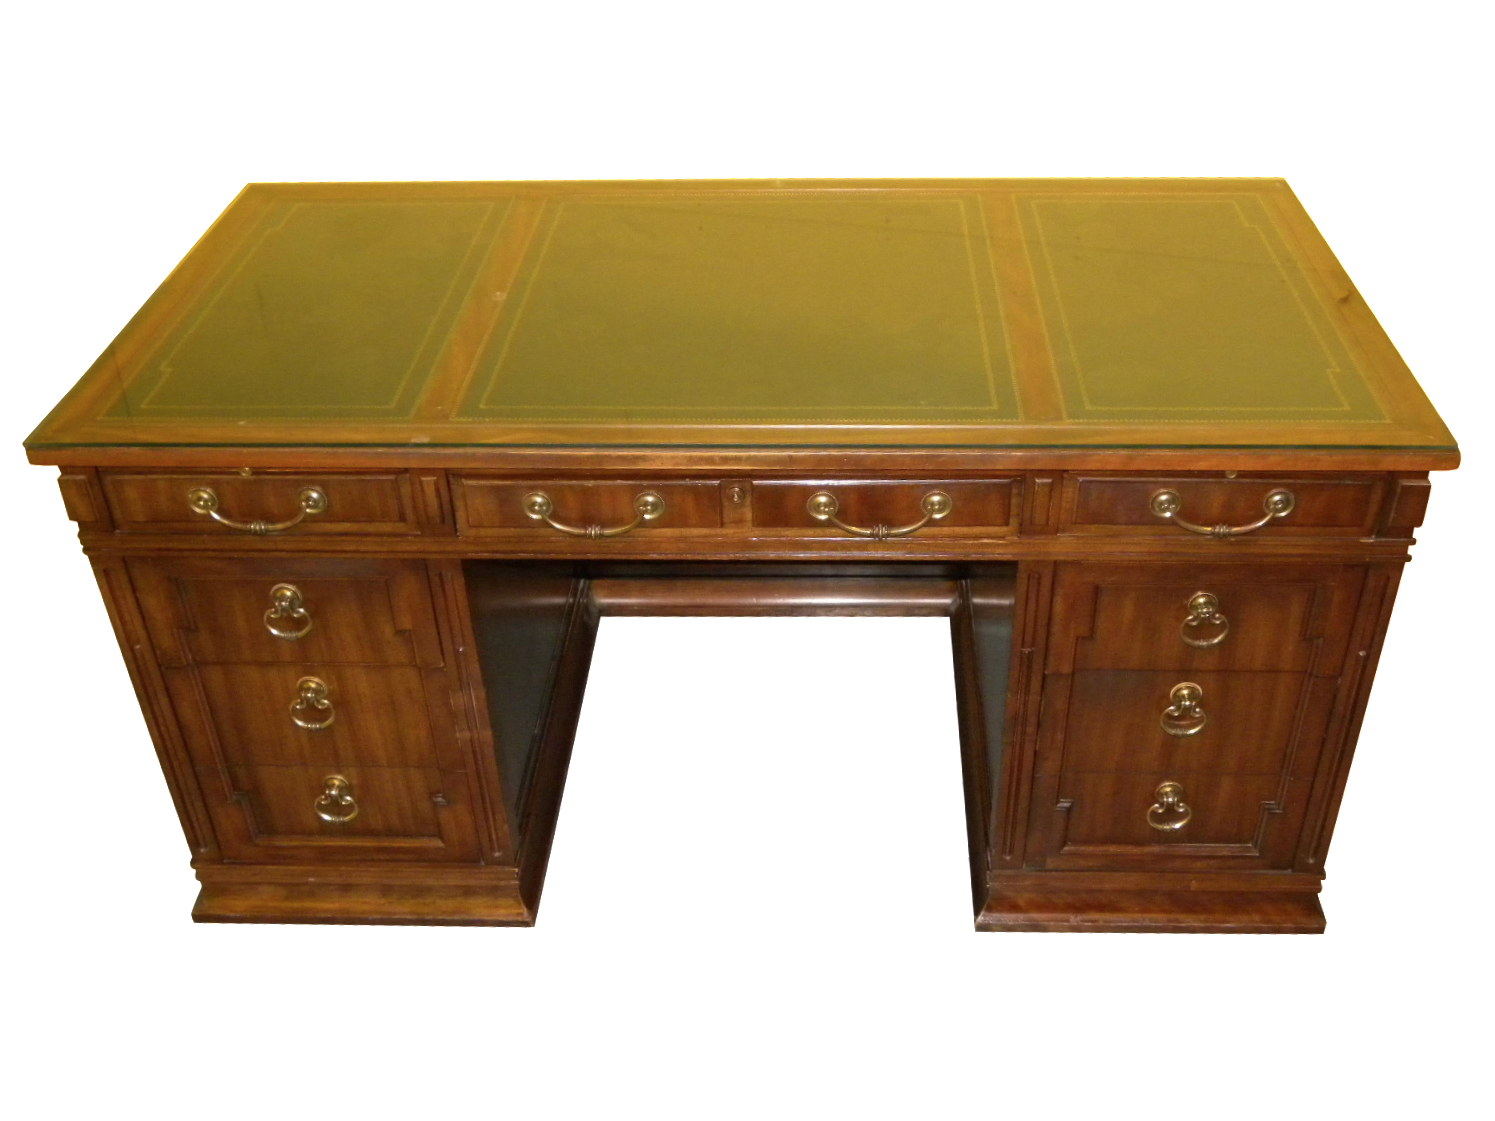 sligh furniture office room. Leather Top Mahogany Desk By Sligh Furniture Office Room